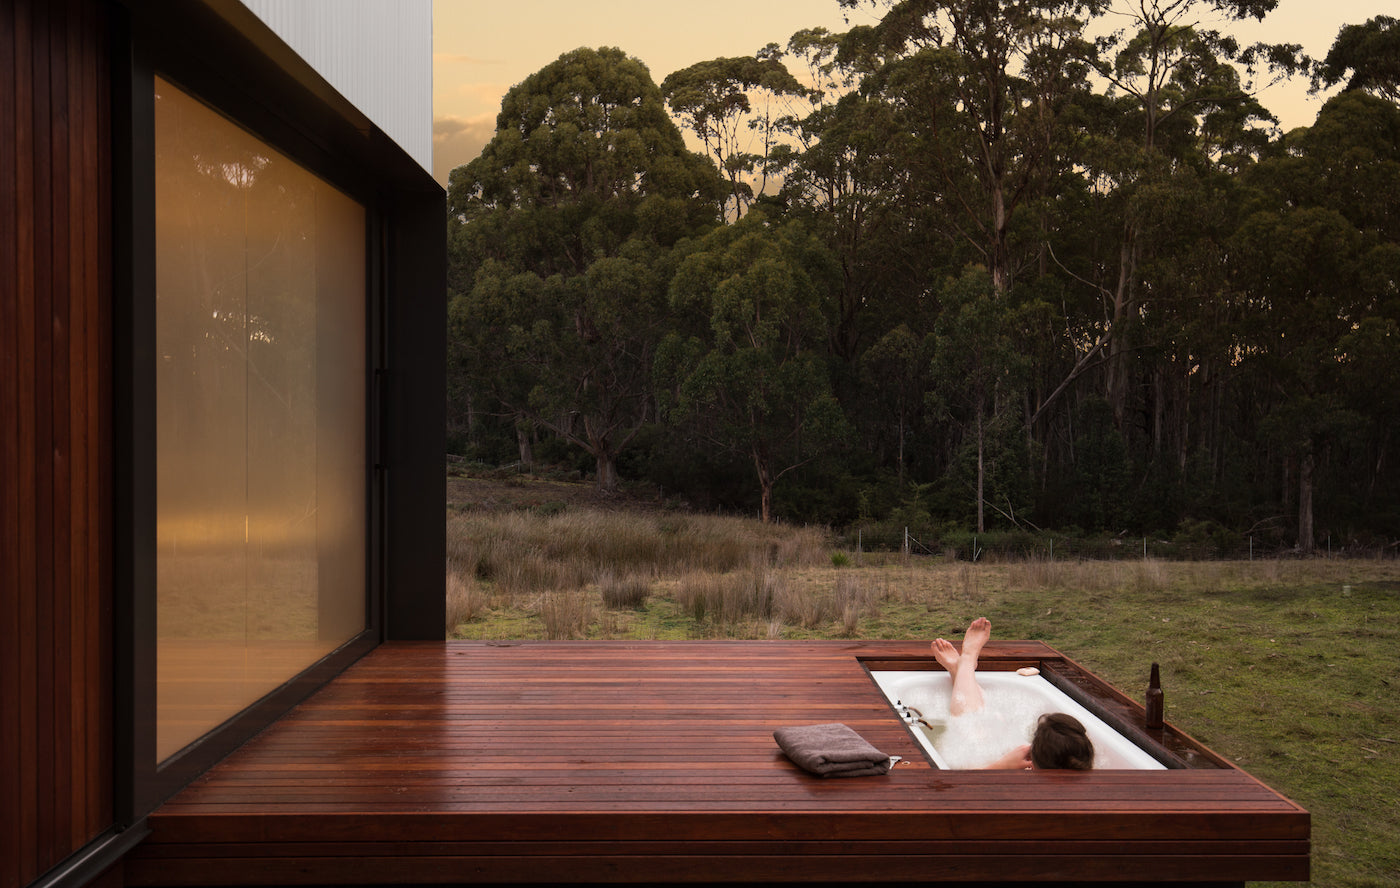 A bathtub is inserted into the floor of the outside deck of this cabin on Bruny Island (Tasmania, Australia). (Photo: Rob Maver)